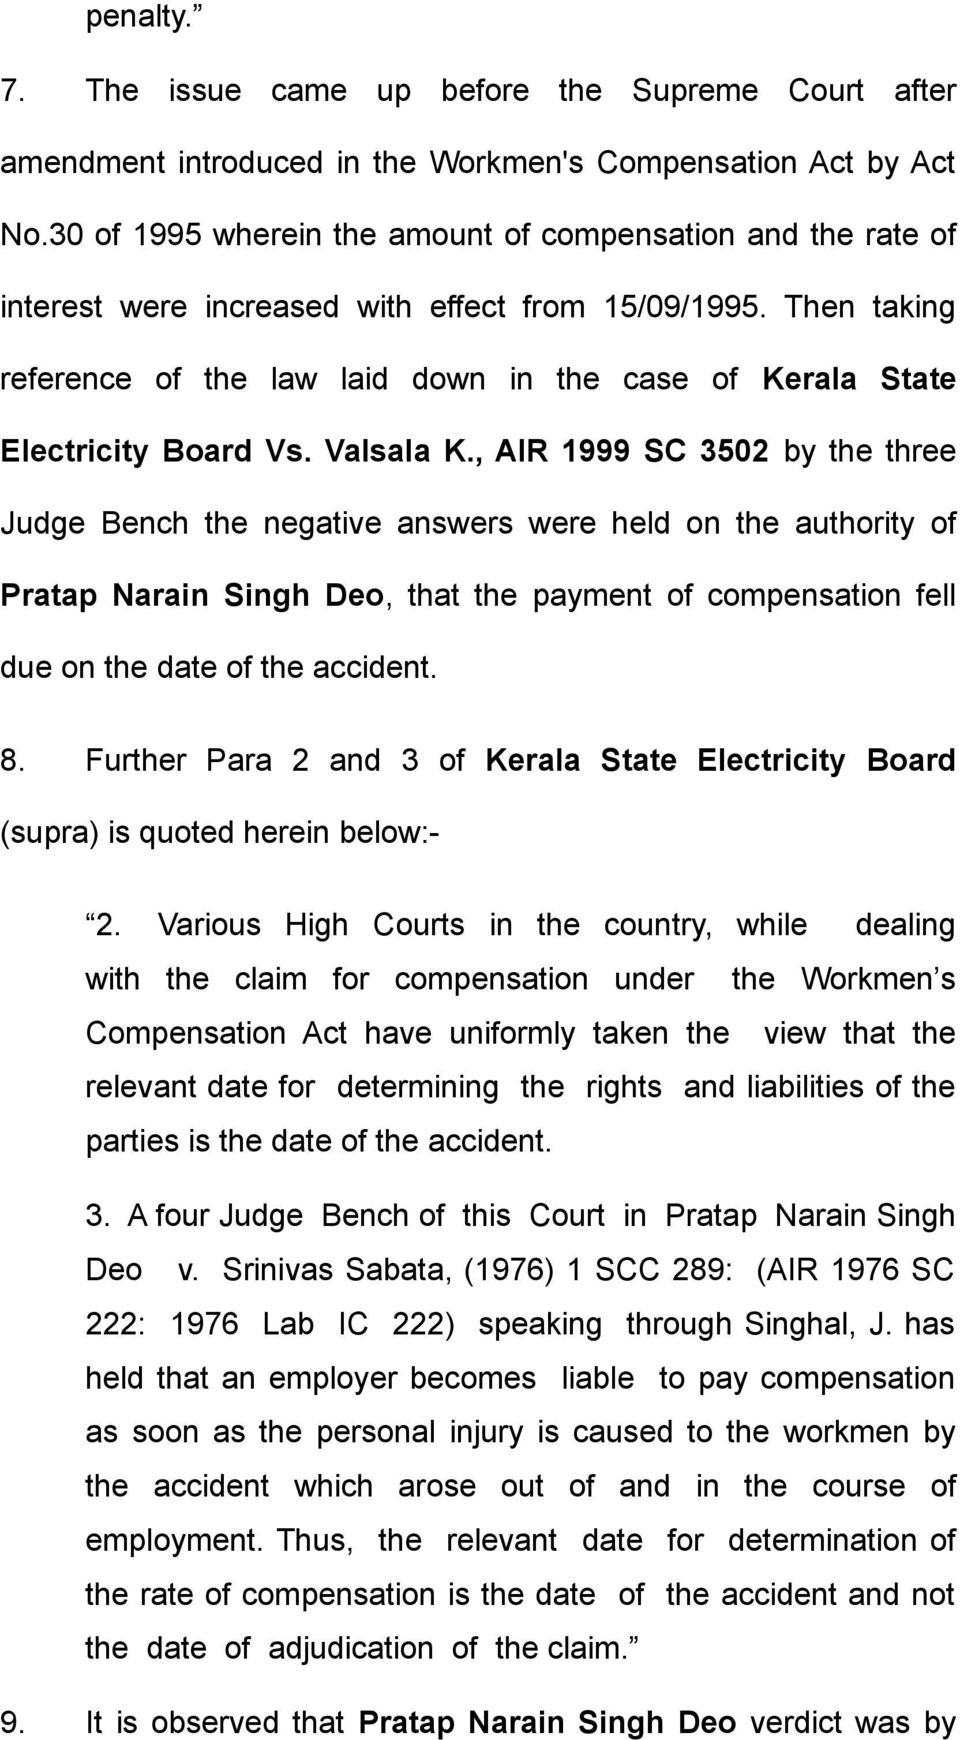 Then taking reference of the law laid down in the case of Kerala State Electricity Board Vs. Valsala K.